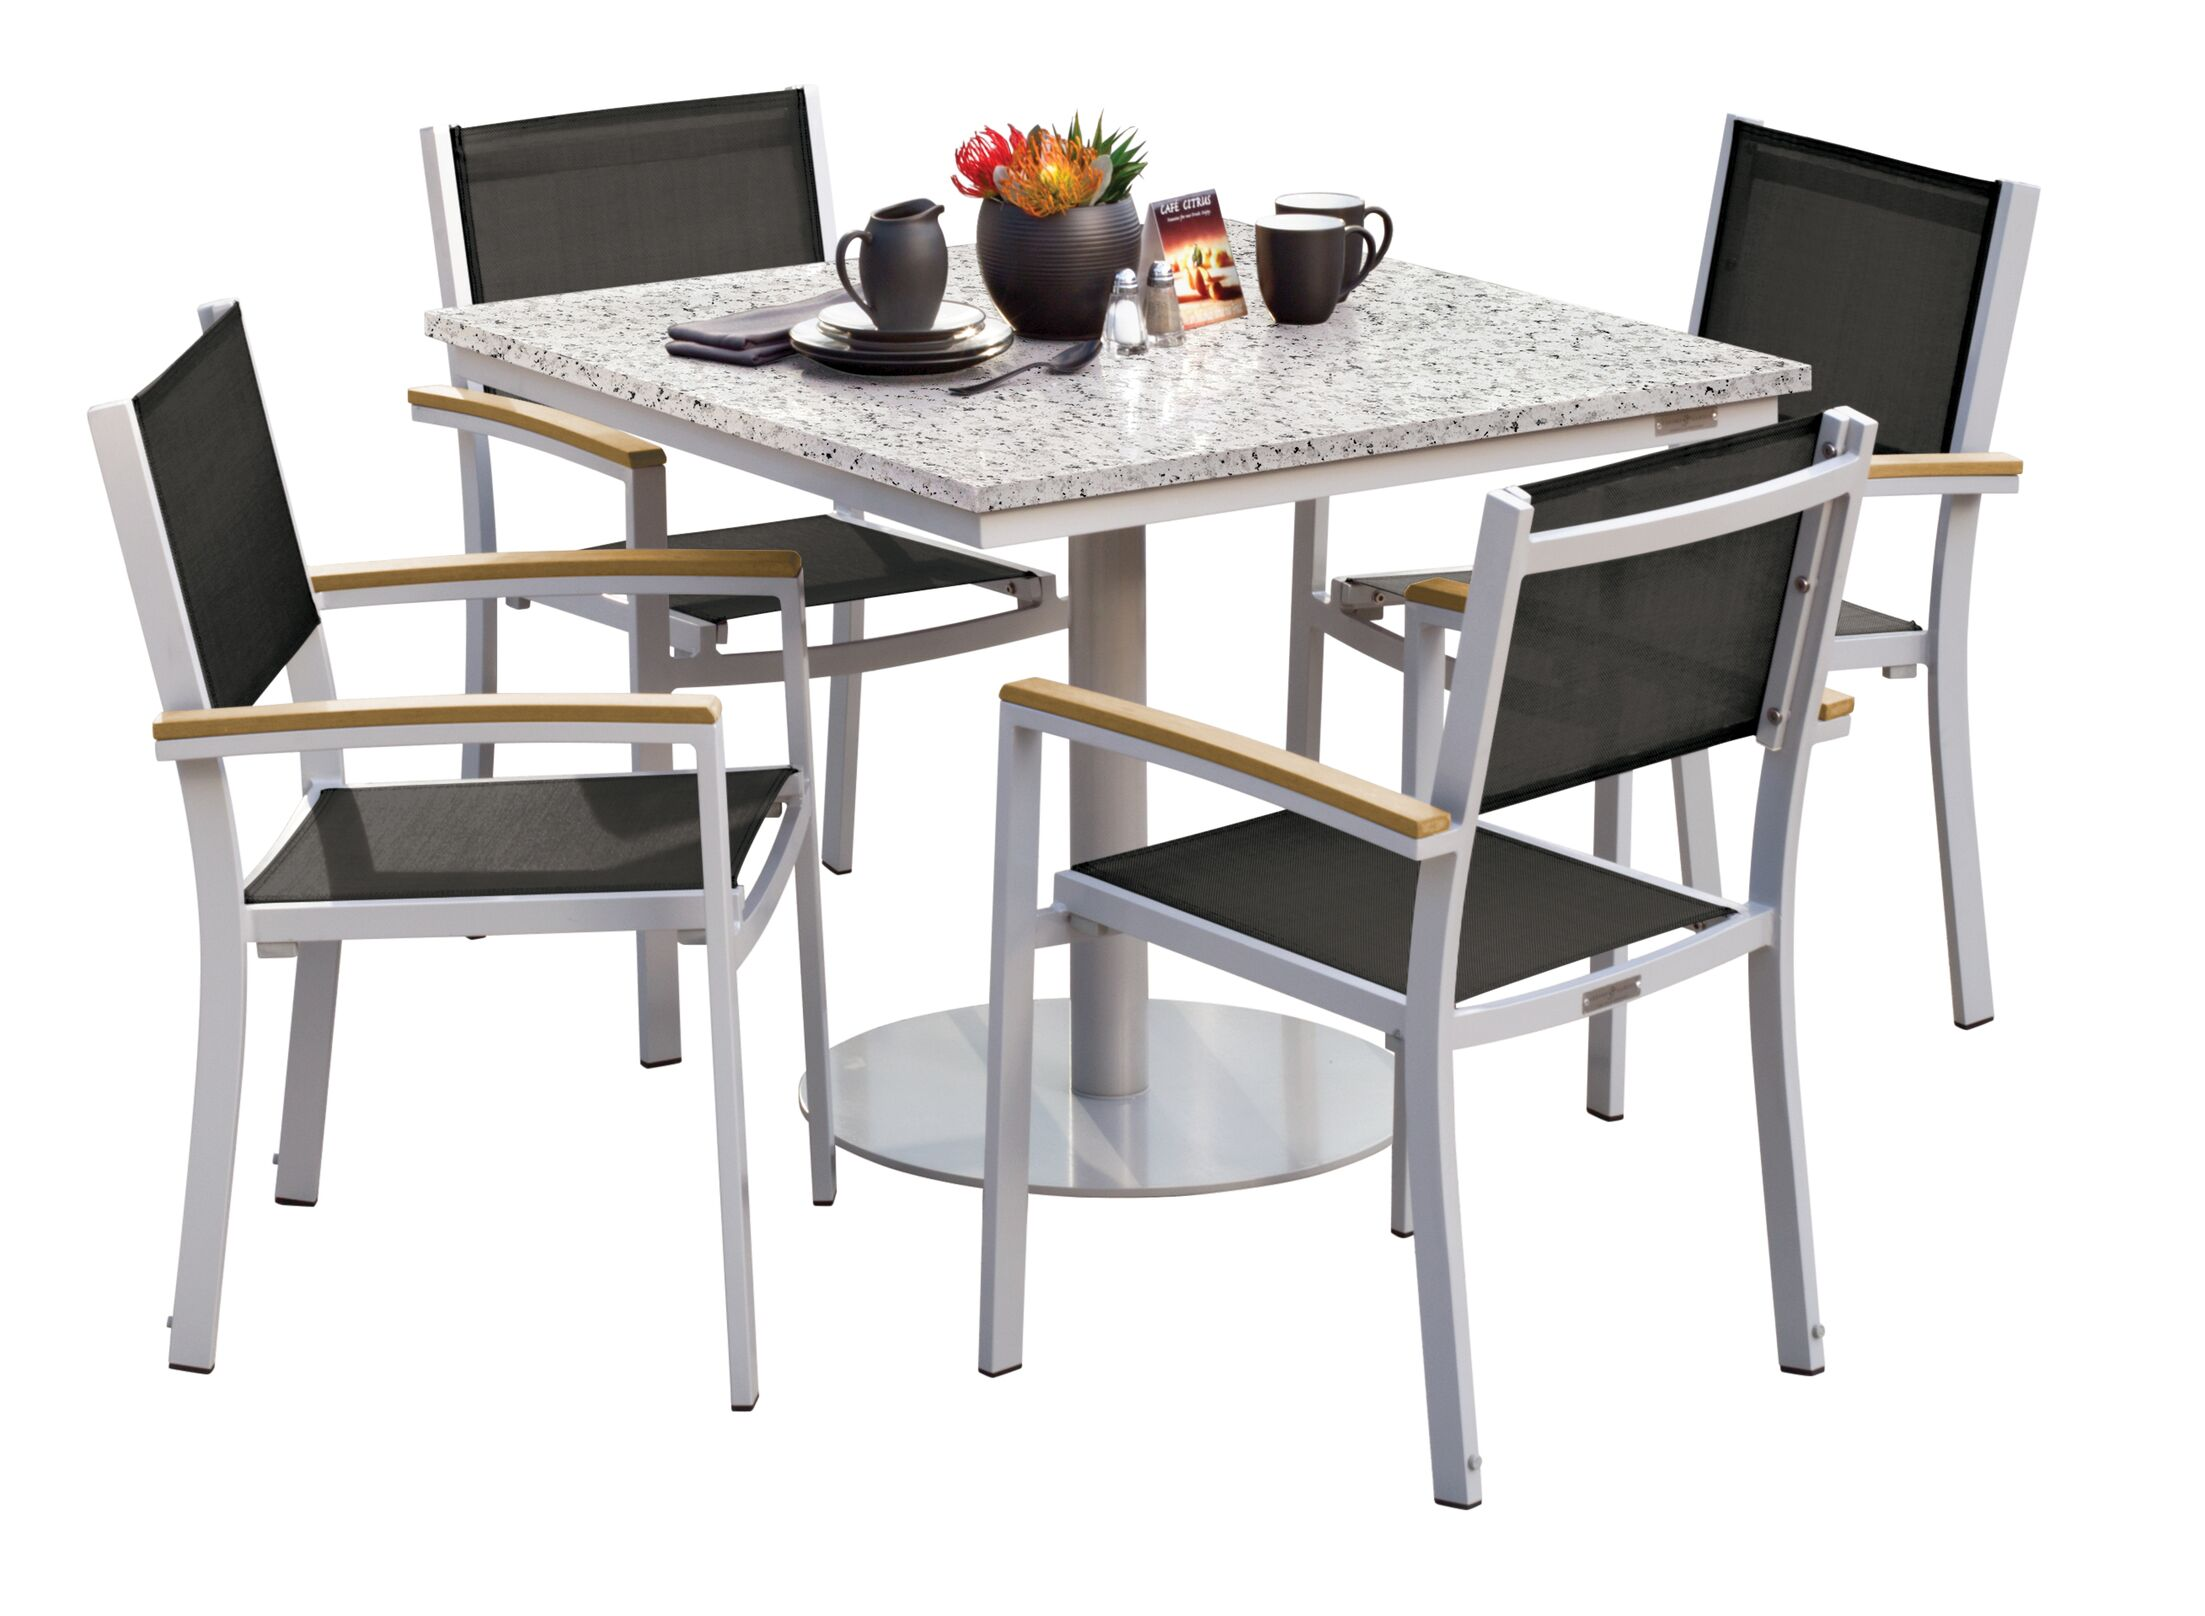 Farmington 5 Piece Dining Set with Sling Seat Chairs Cushion Color: Black, Finish: Natural